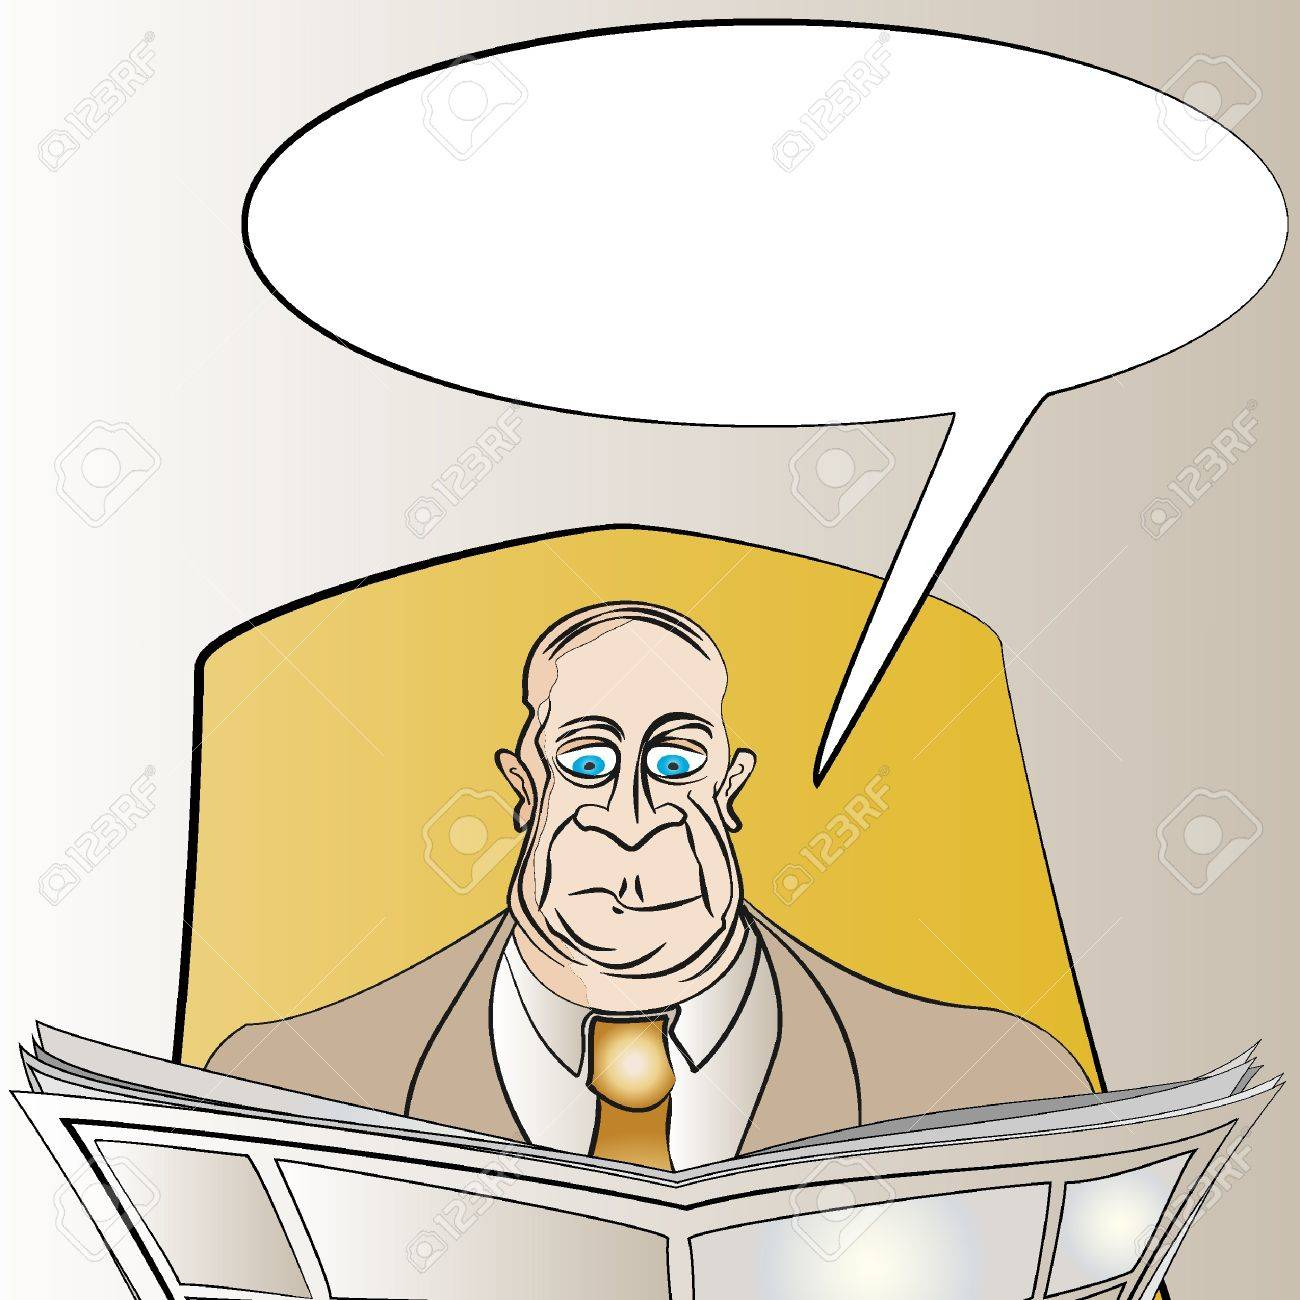 Man Reading News with Copy Space on Newspaper & Message Board Vector Stock Vector - 10927696